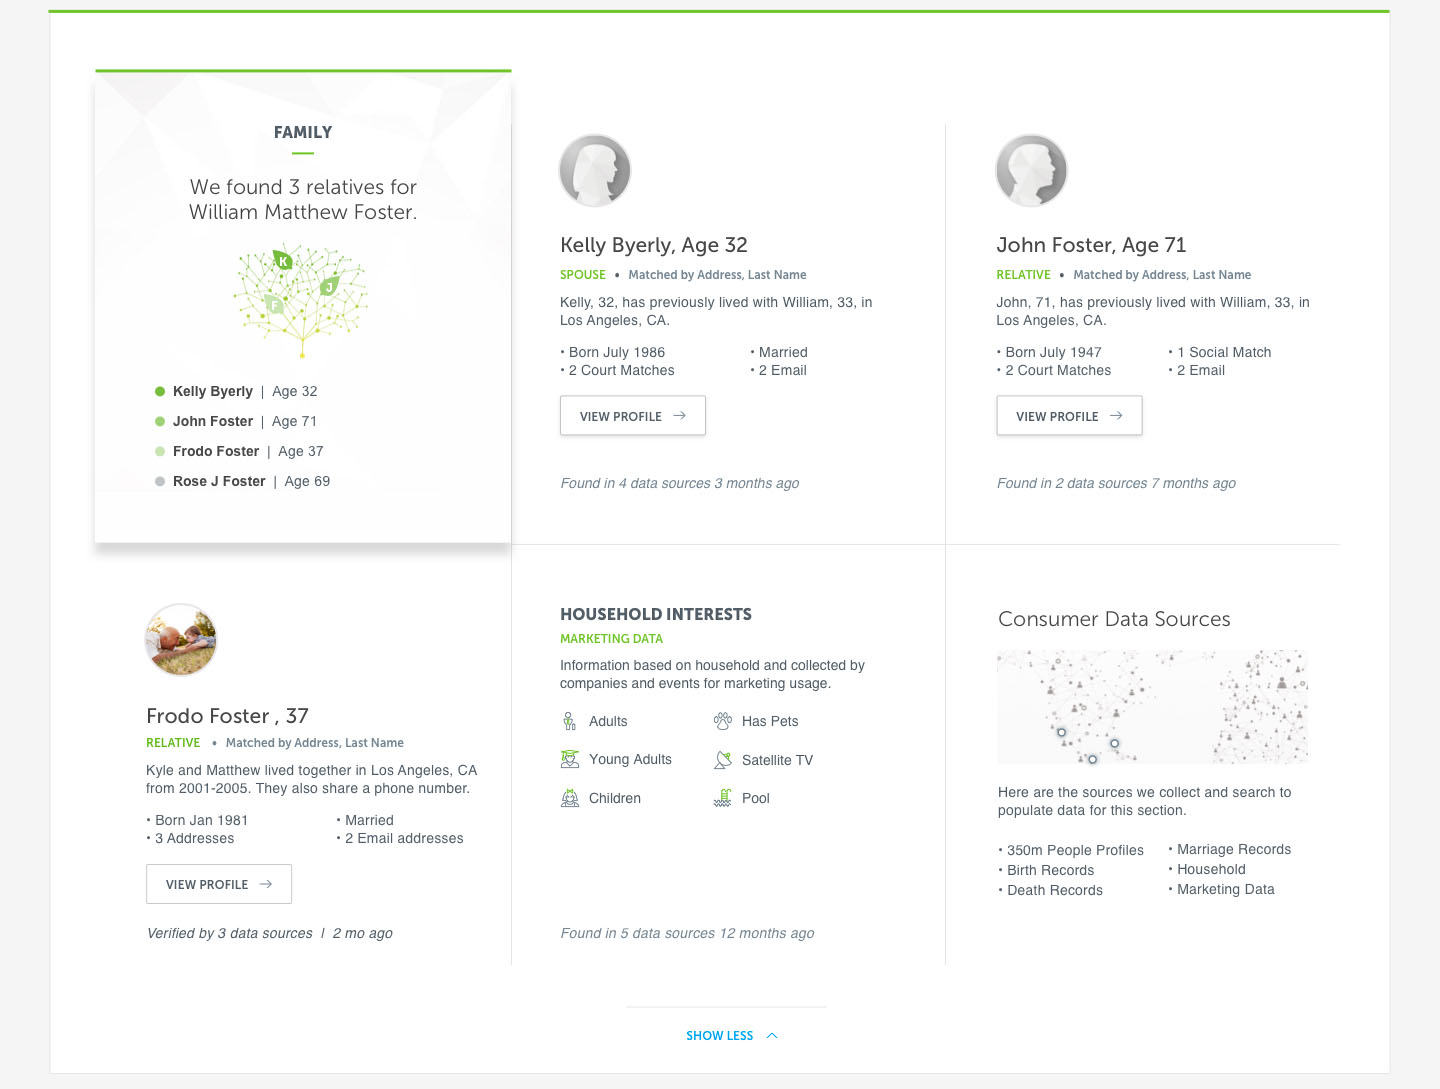 Image of the second half of the Spokeo profile that can include family members, interests, and data sources